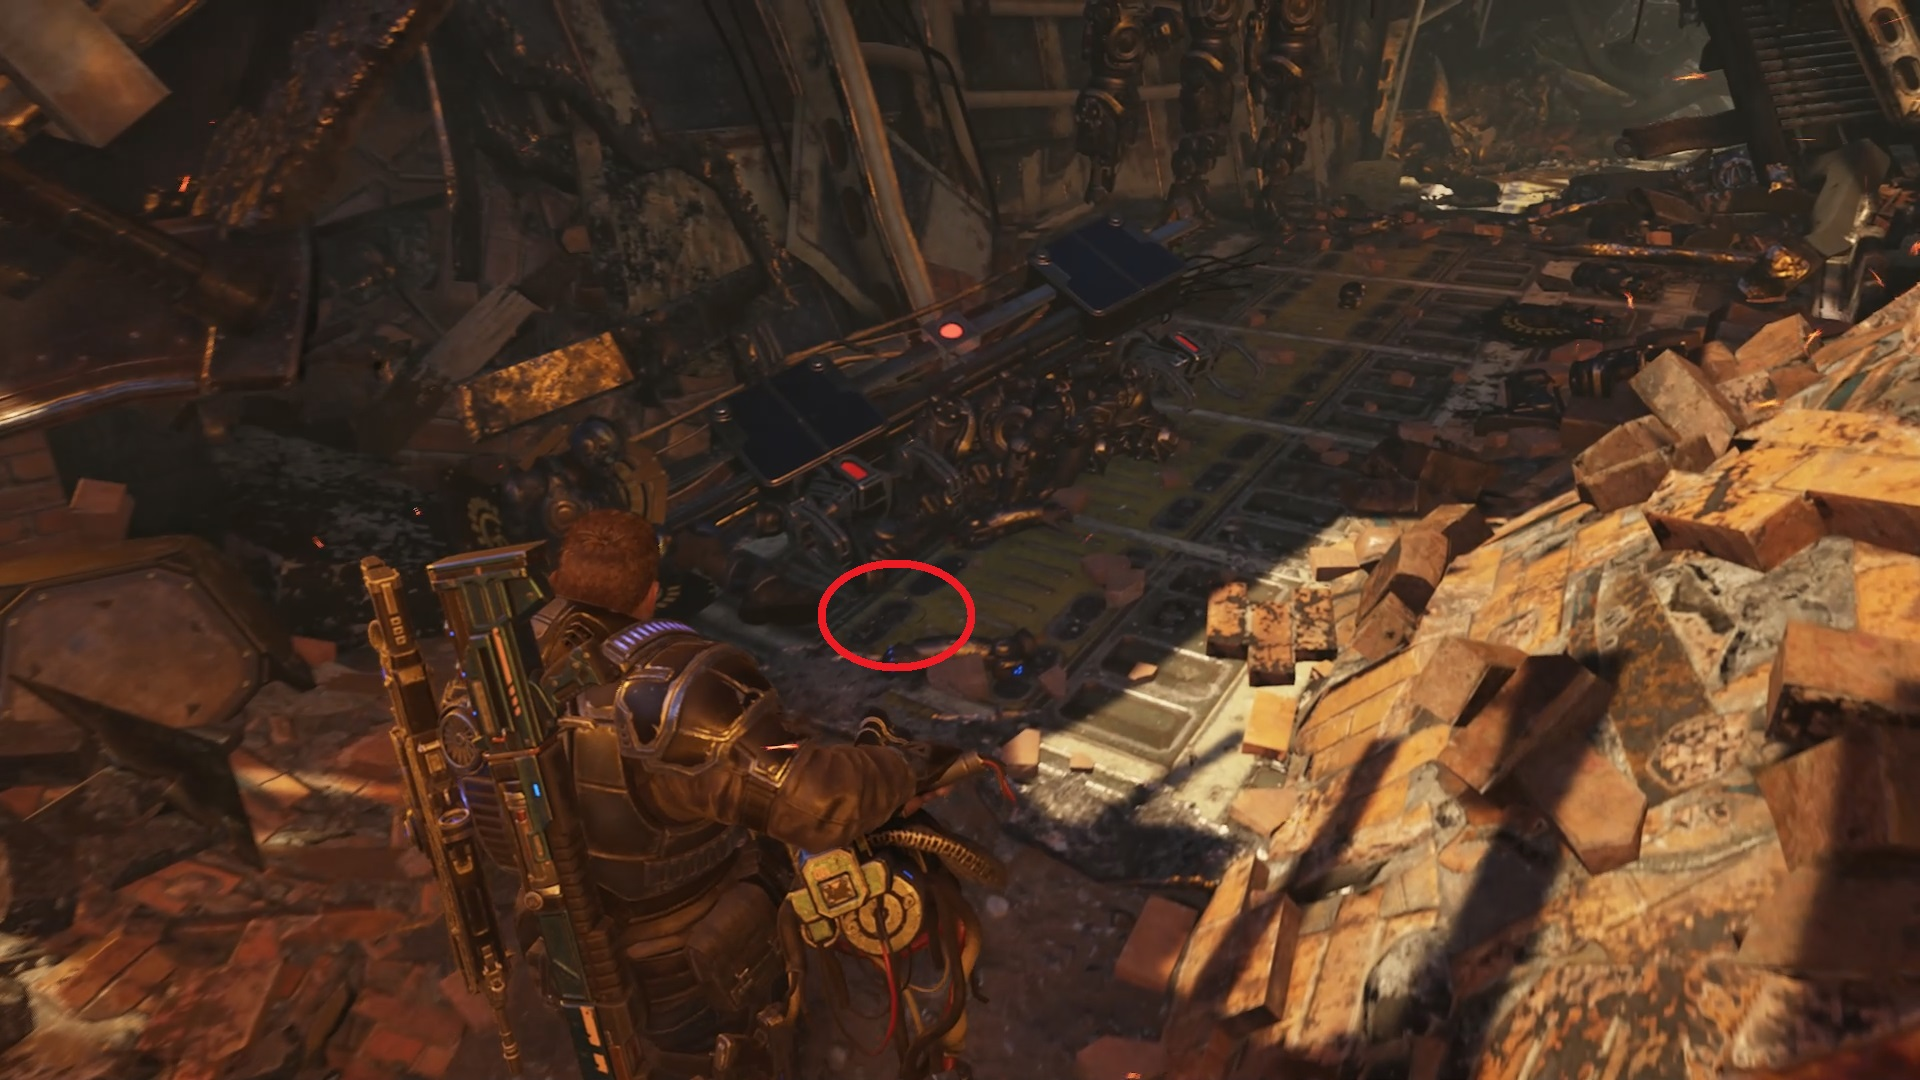 Gears 5 - Fallen Gear at Condor Crash